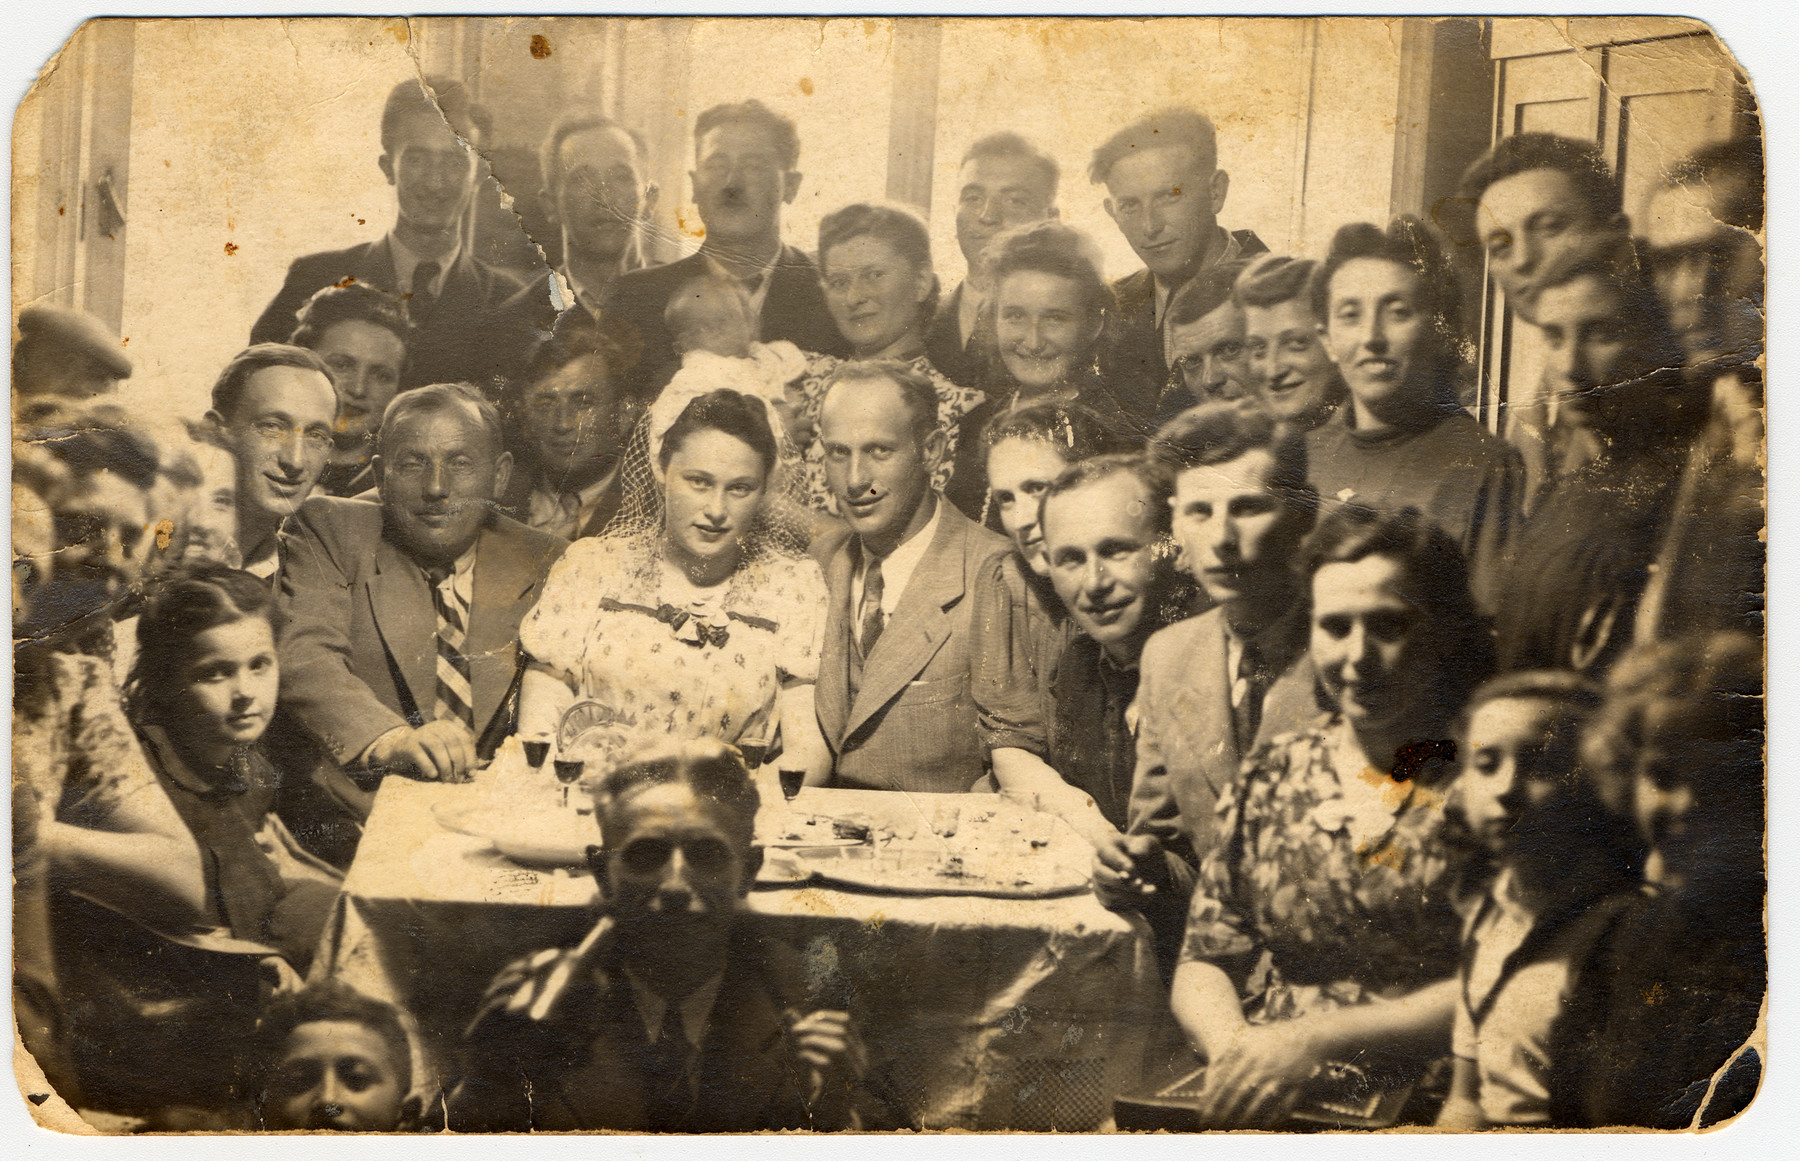 A group of friends gather for a celebration [possibly a wedding] in the Deggendorf displaced persons' camp.  Among those pictured are Moses and Mania Leinwand (second row, sixth and seventh from the right).